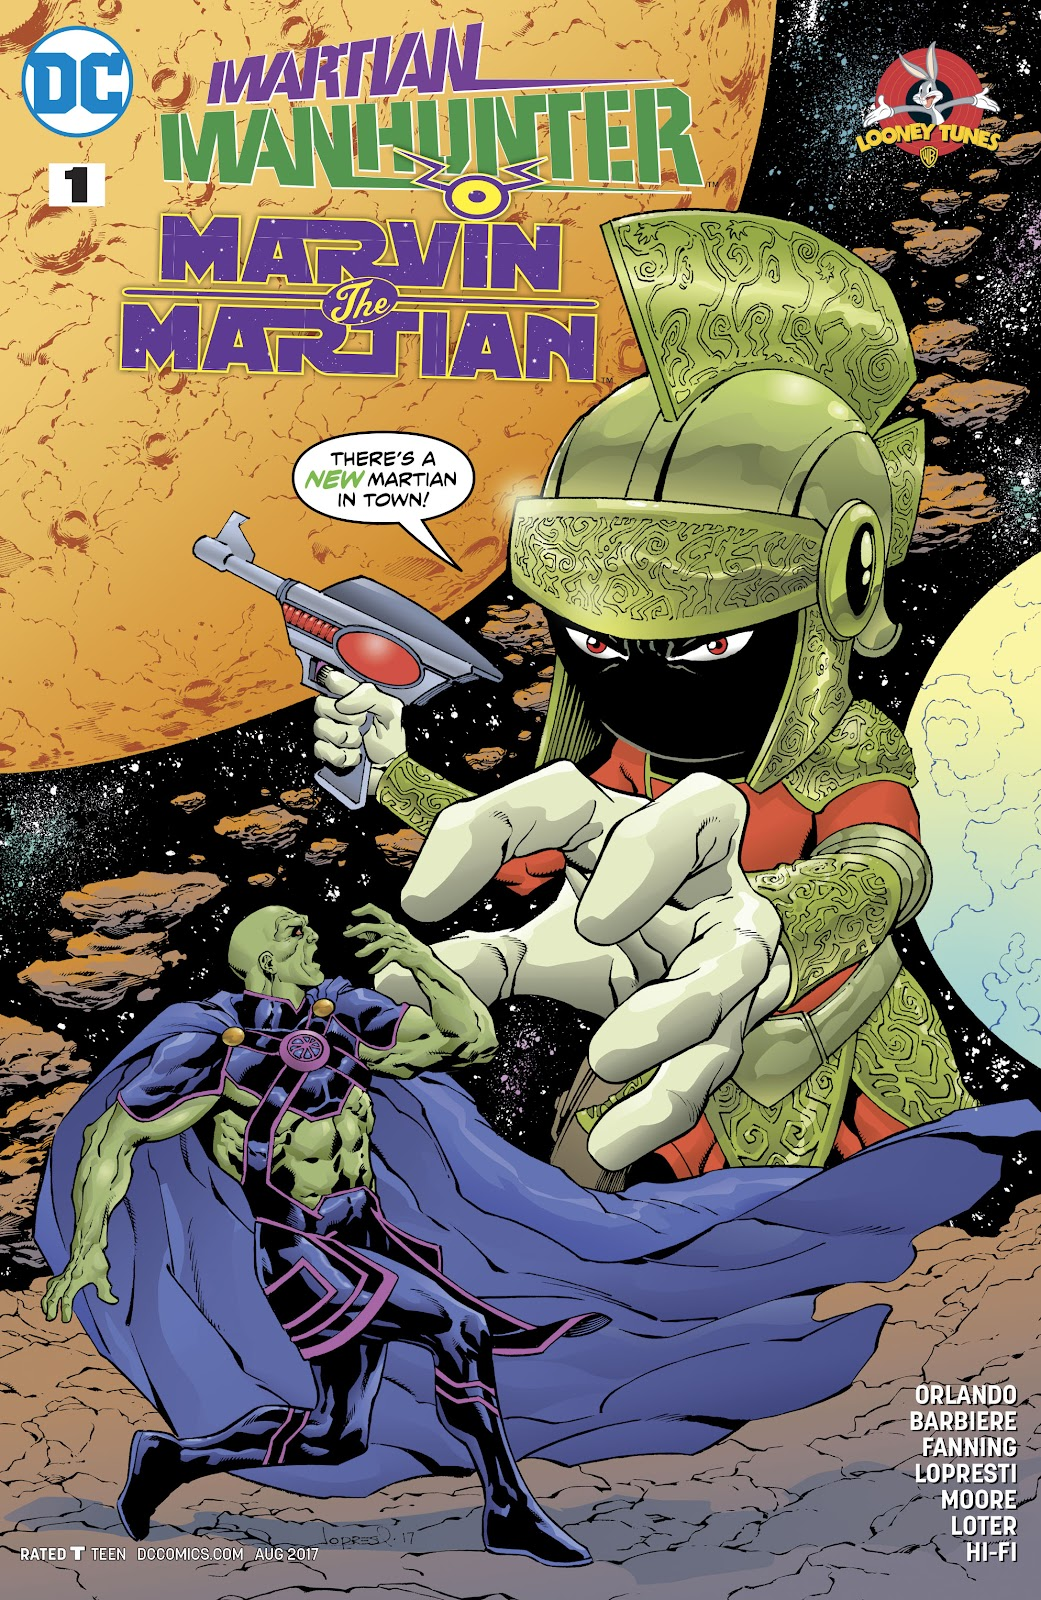 Martian Manhunter/Marvin the Martian Special issue Full - Page 1